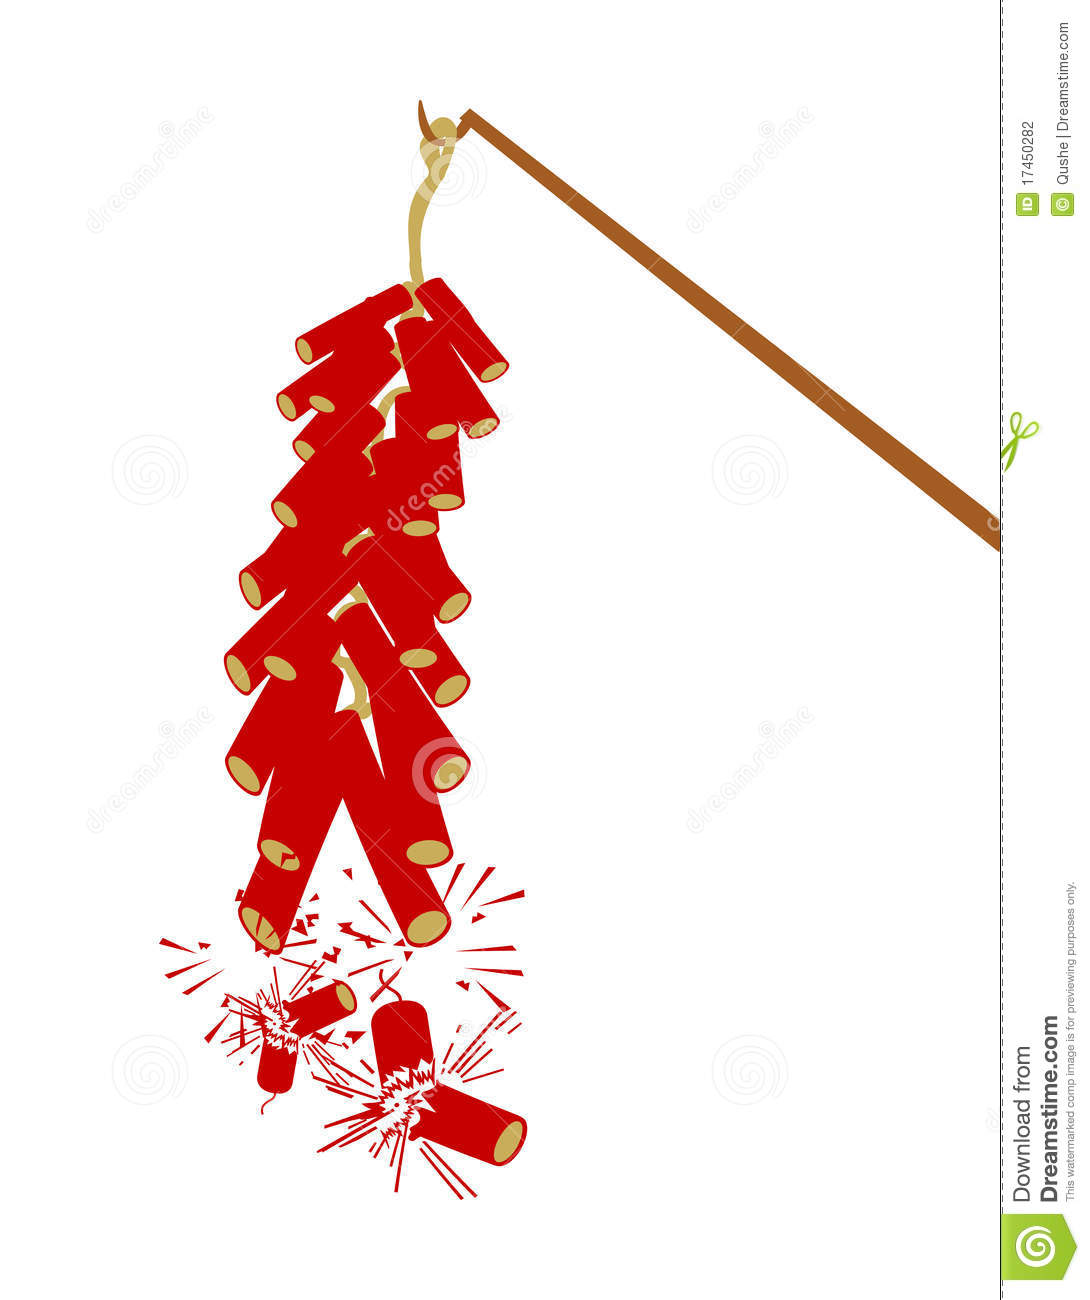 Chinese New Year Firecrackers Clipart.